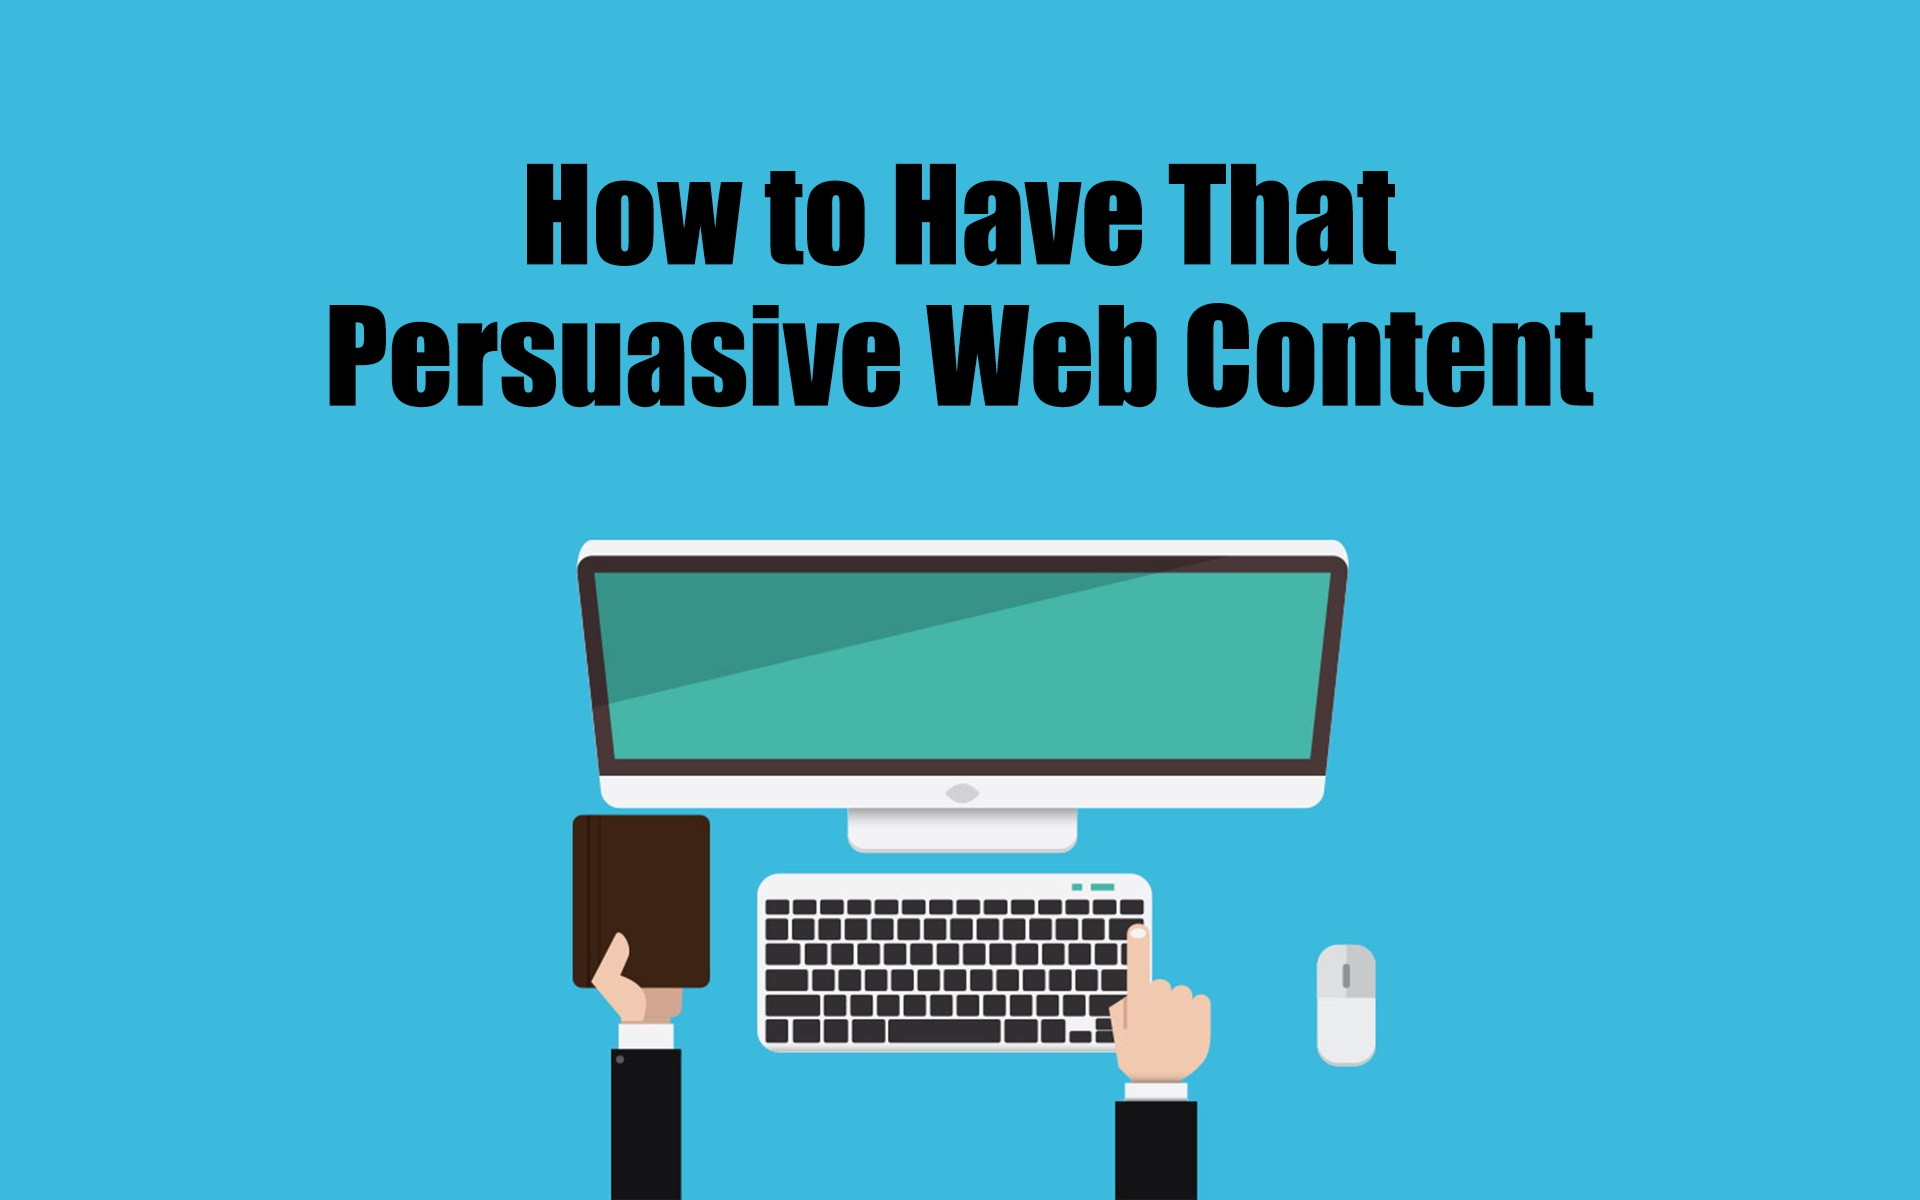 How to Have That Persuasive Web Content